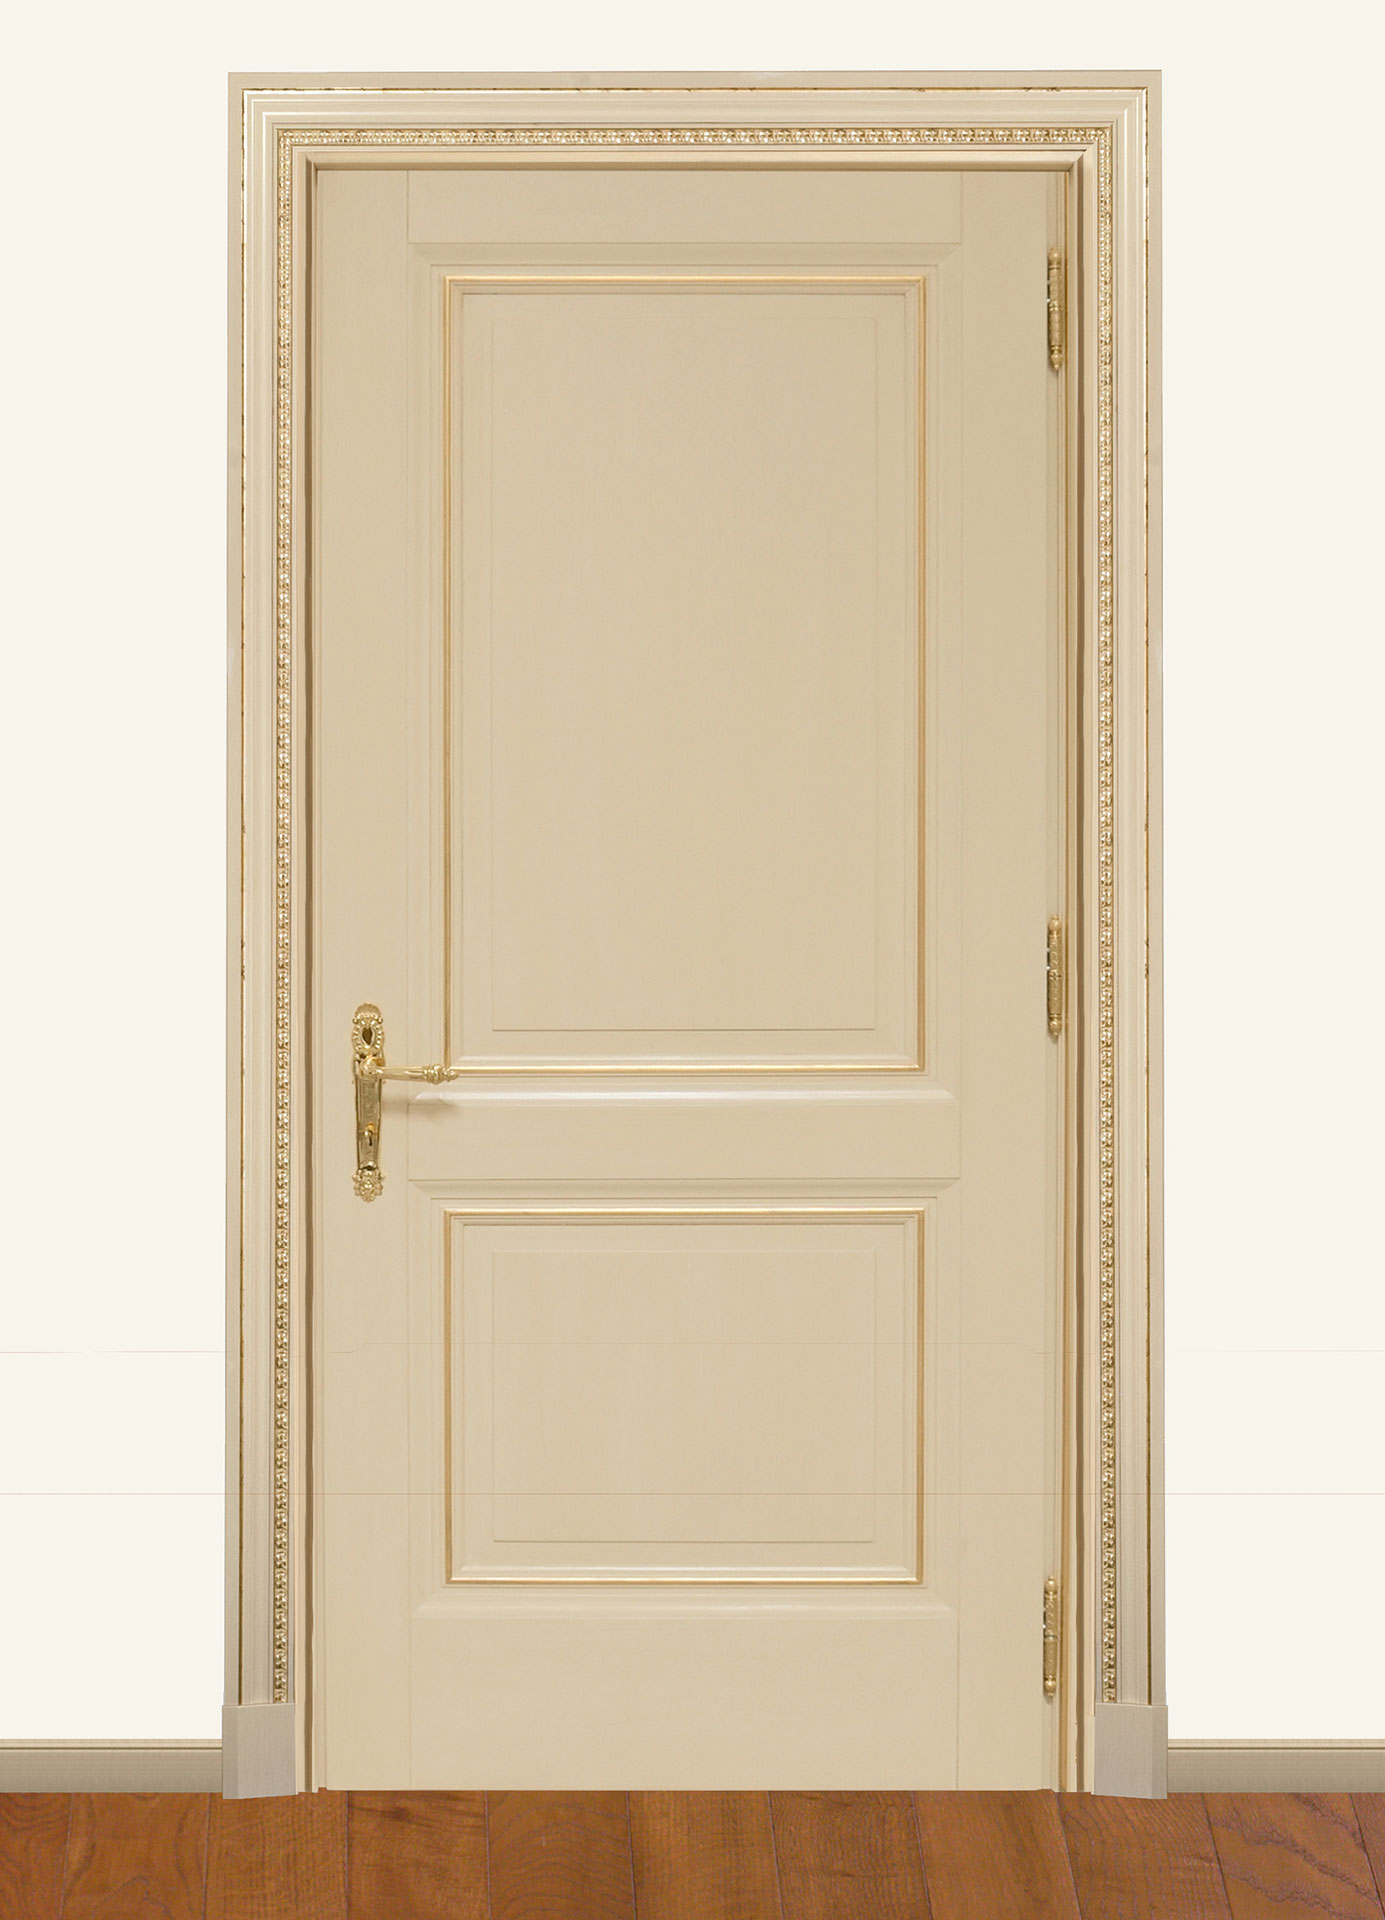 Faoma smooth door in white wood